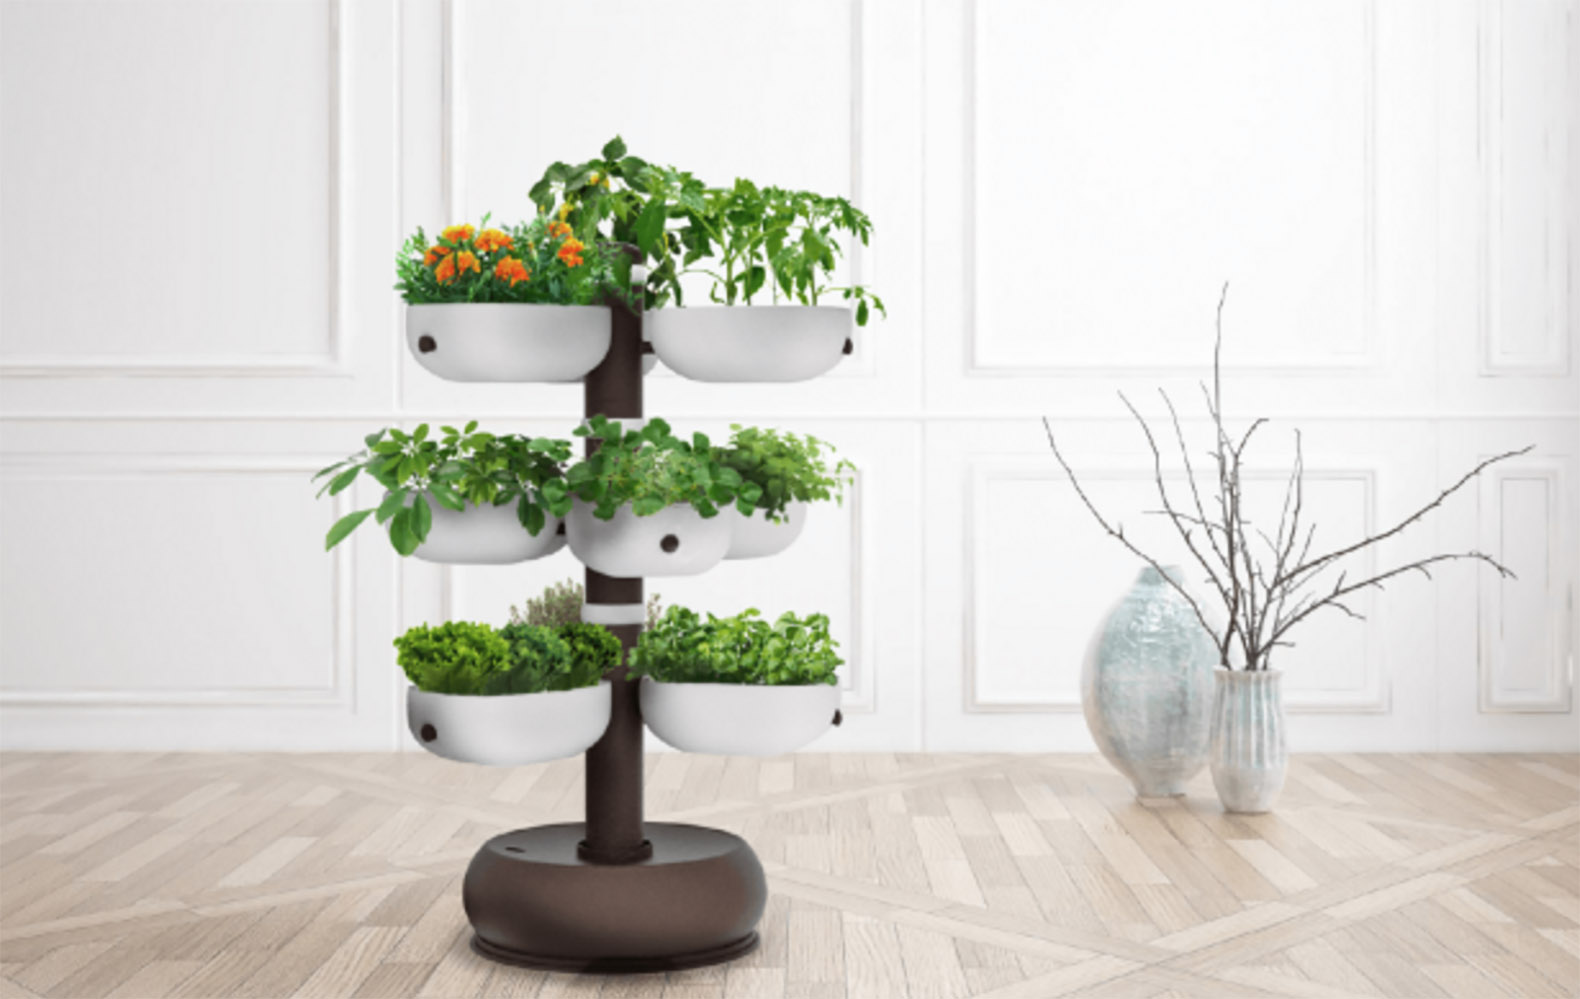 Indoor garden inhabitat green design innovation for Indoor gardening videos